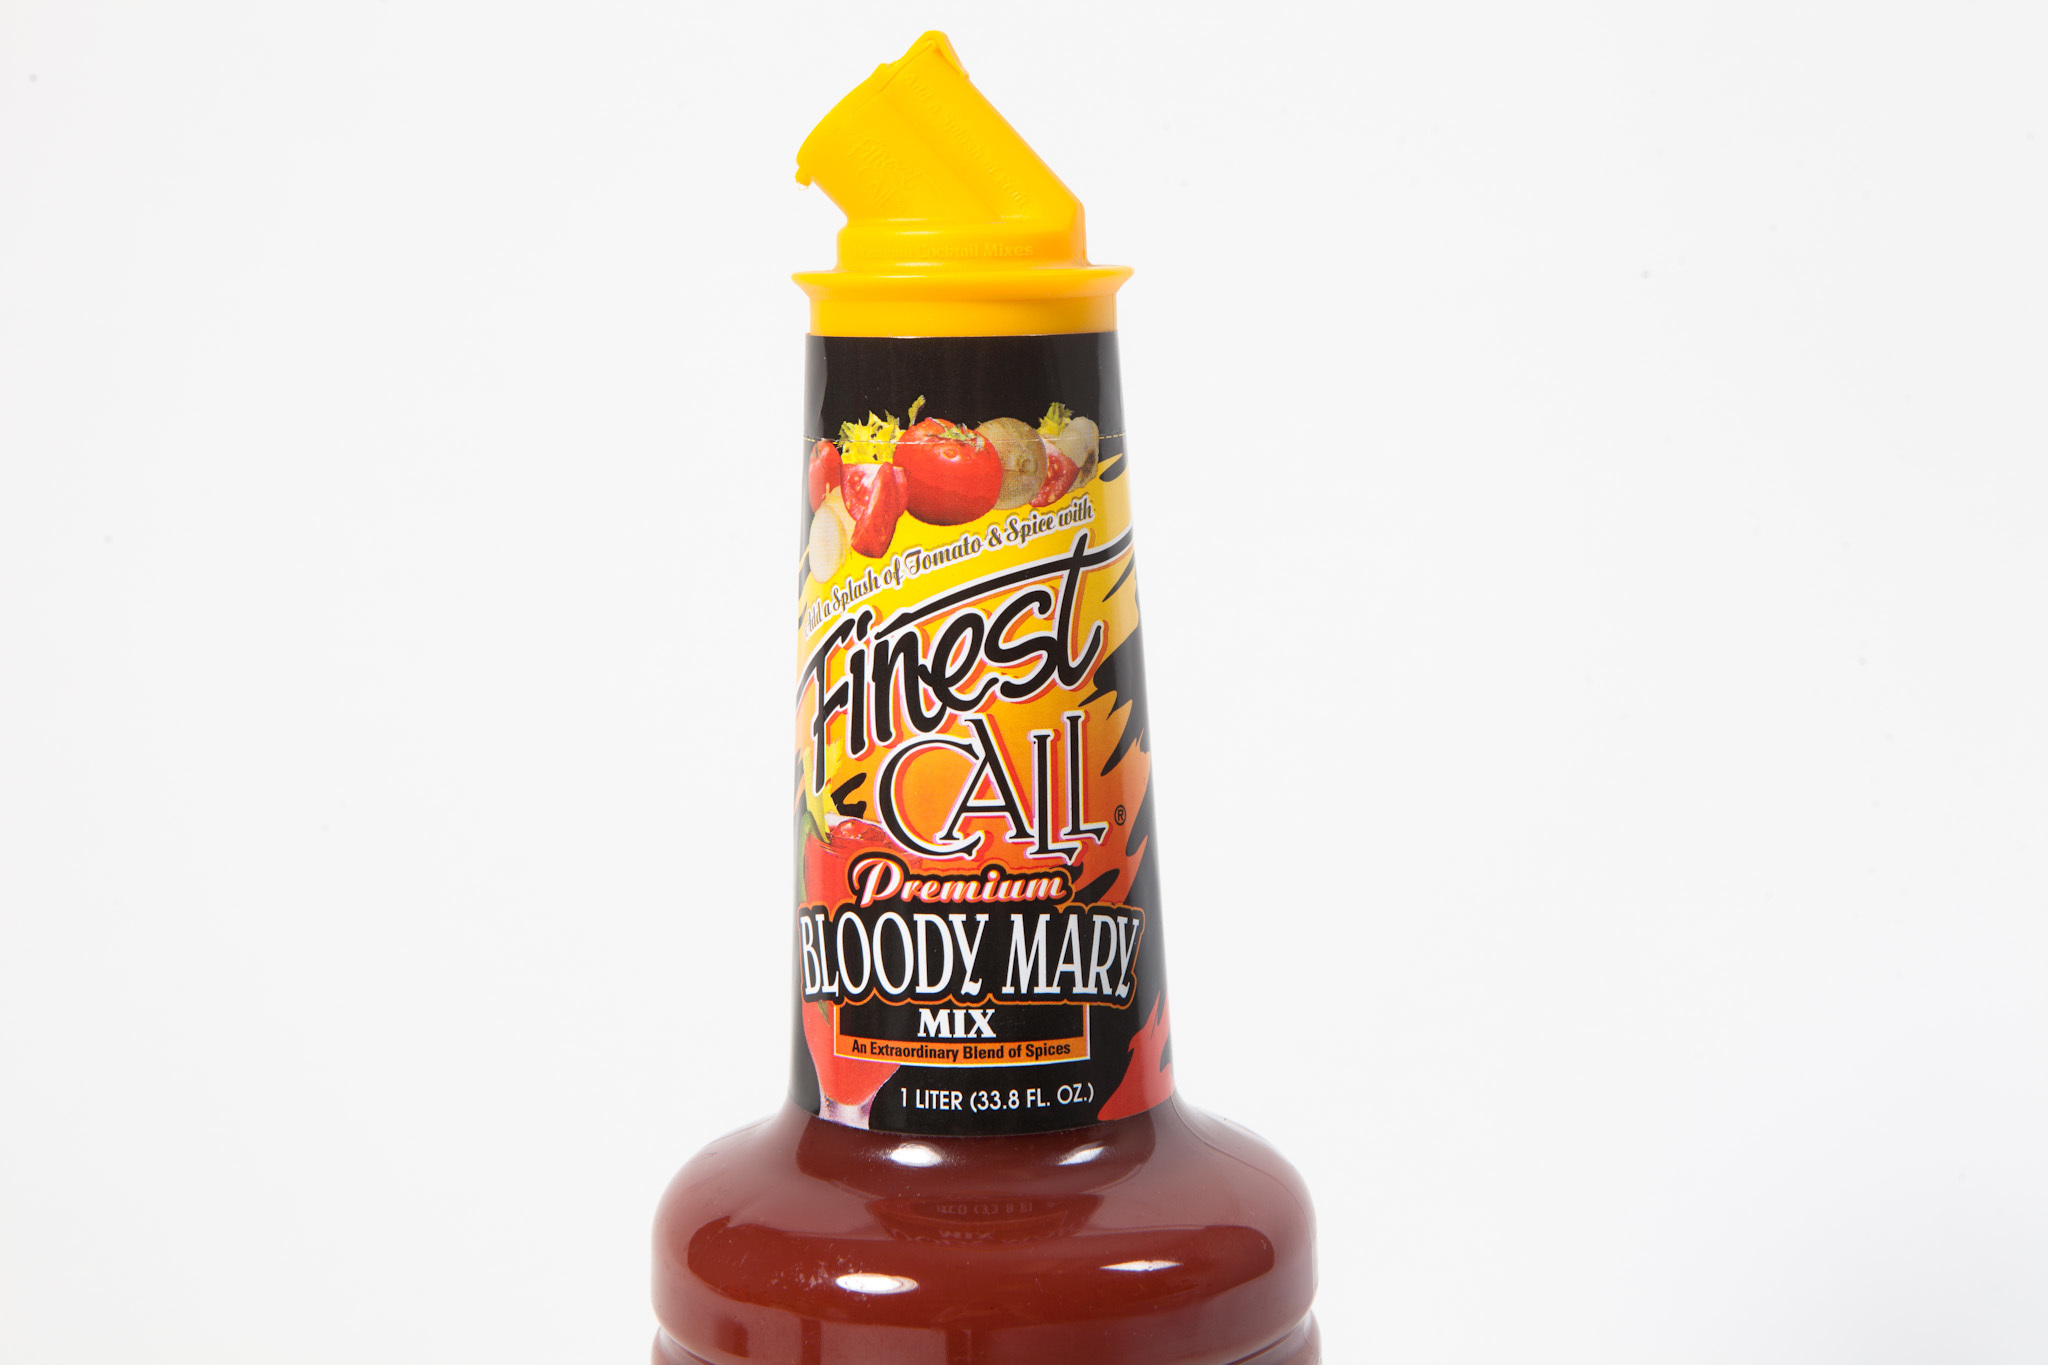 Finest call premium bloody mary mix